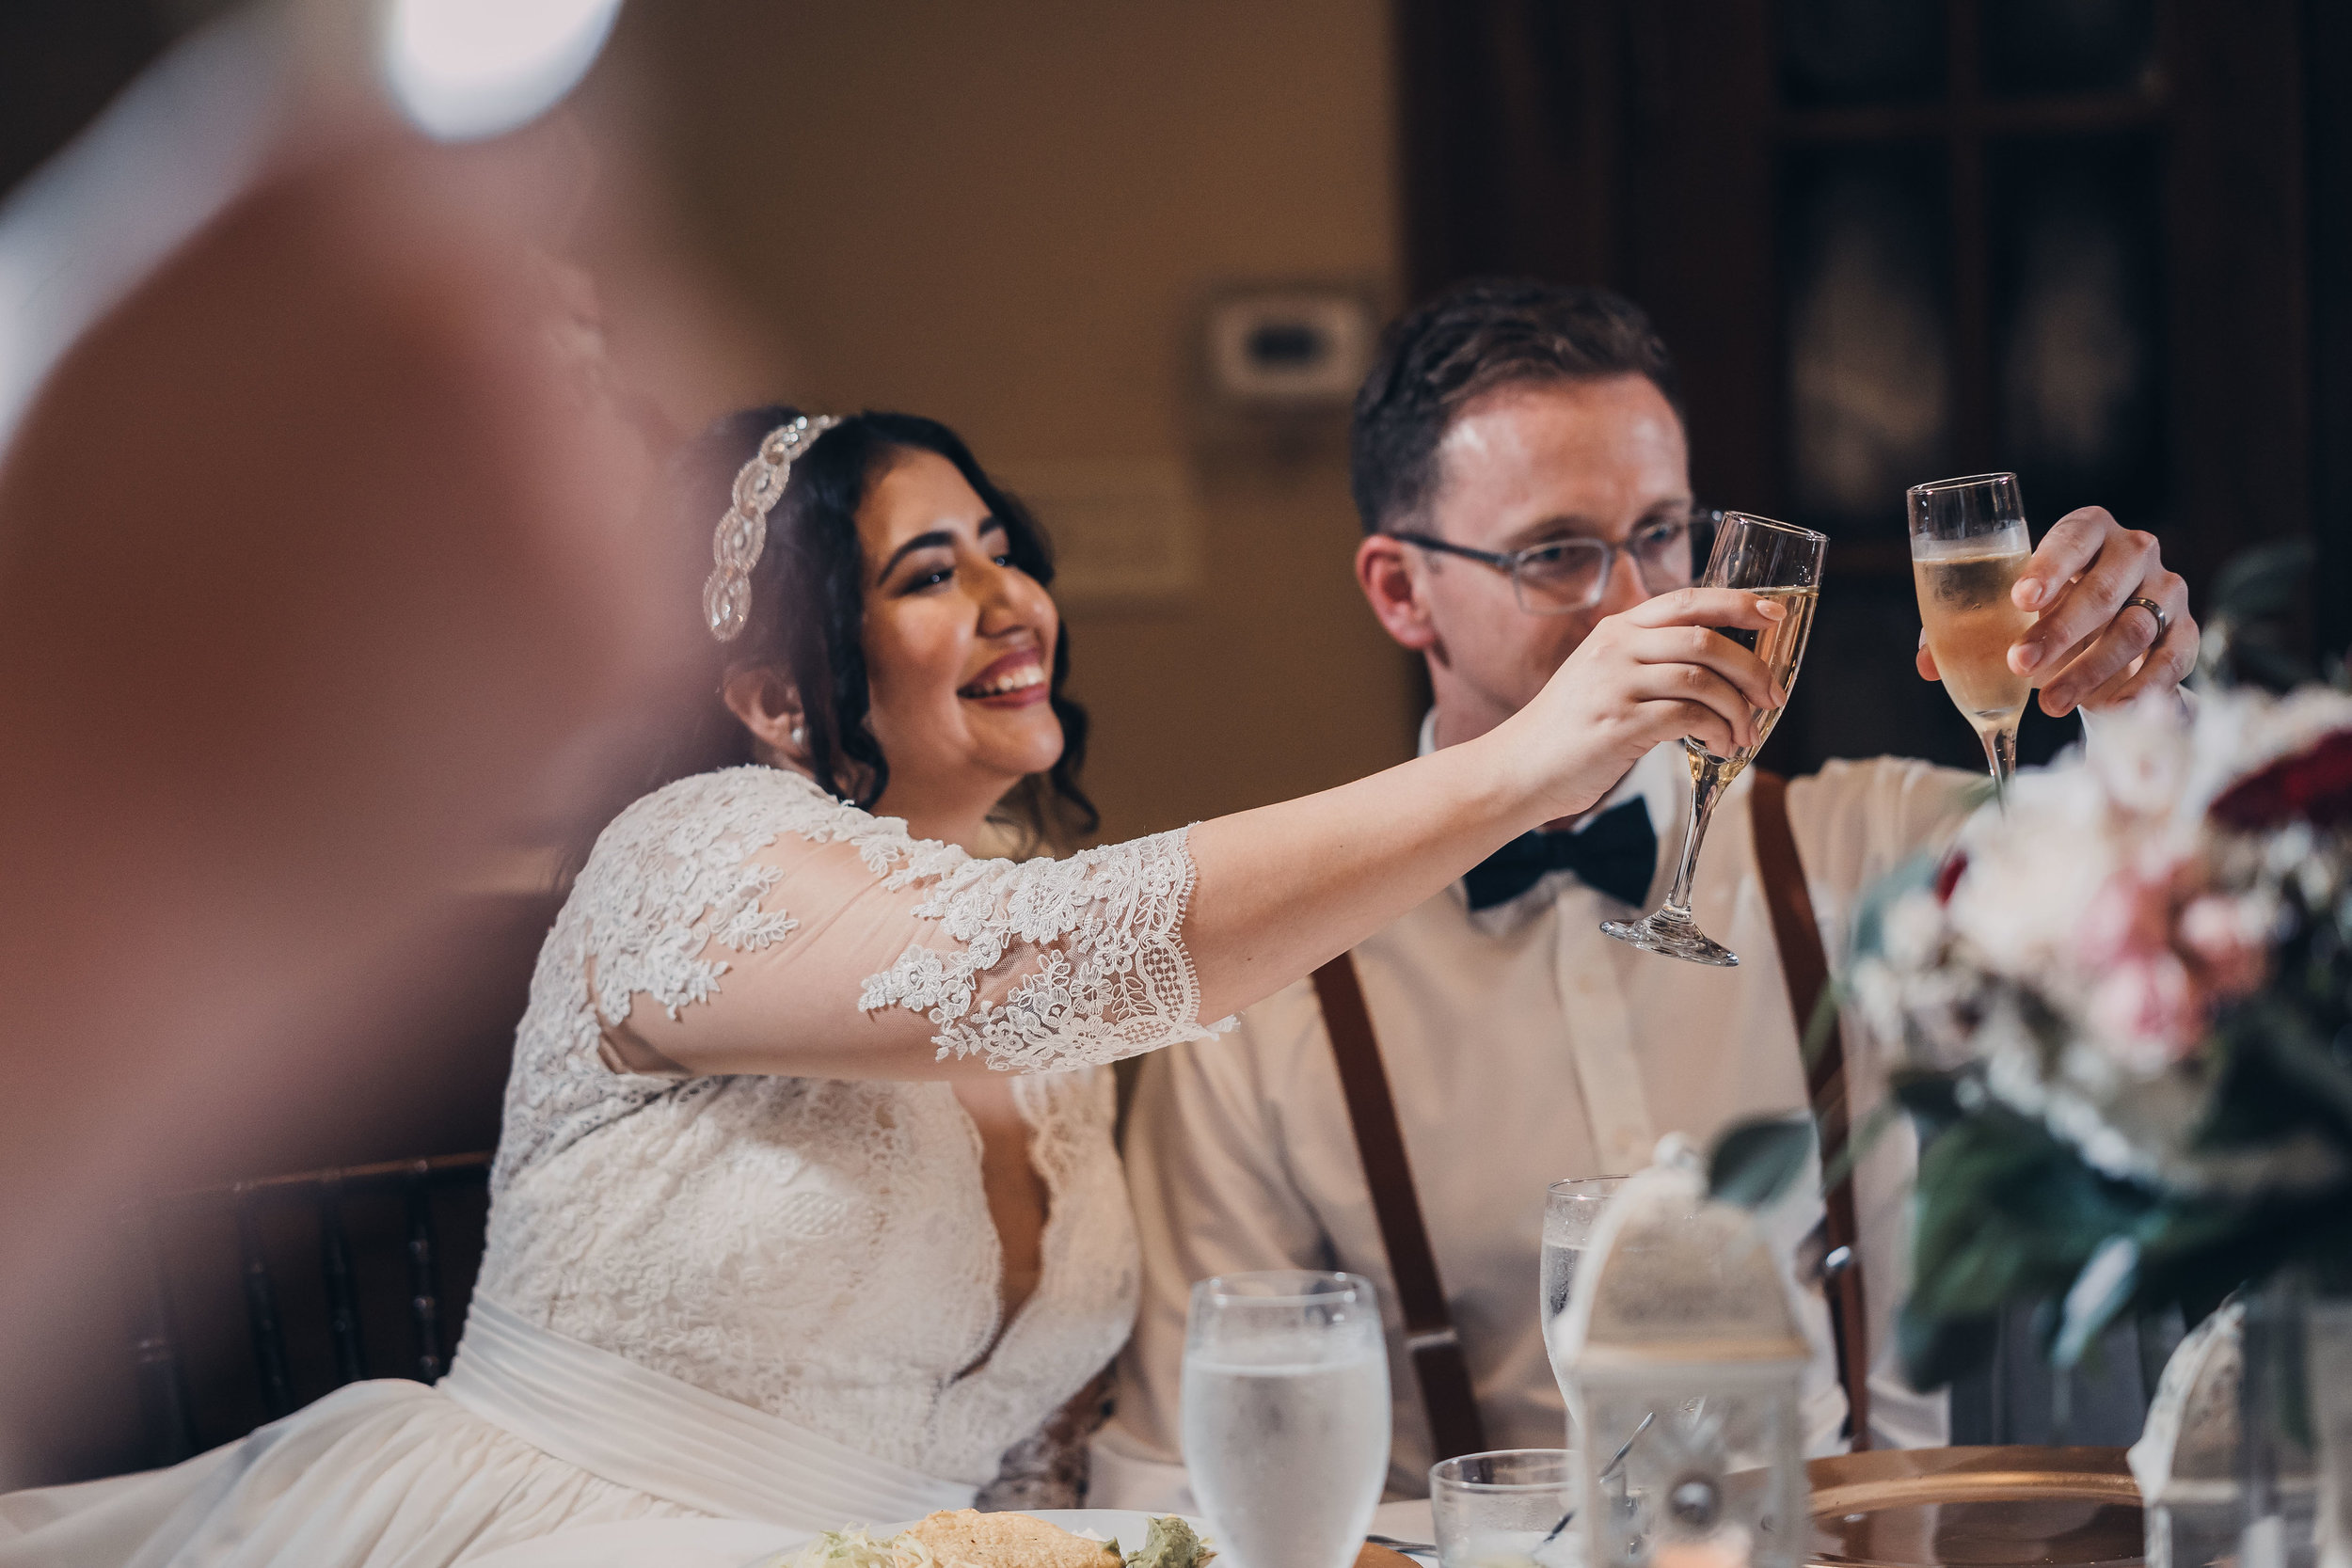 Wedding Toast Cheers Sweetheart Table Champagne